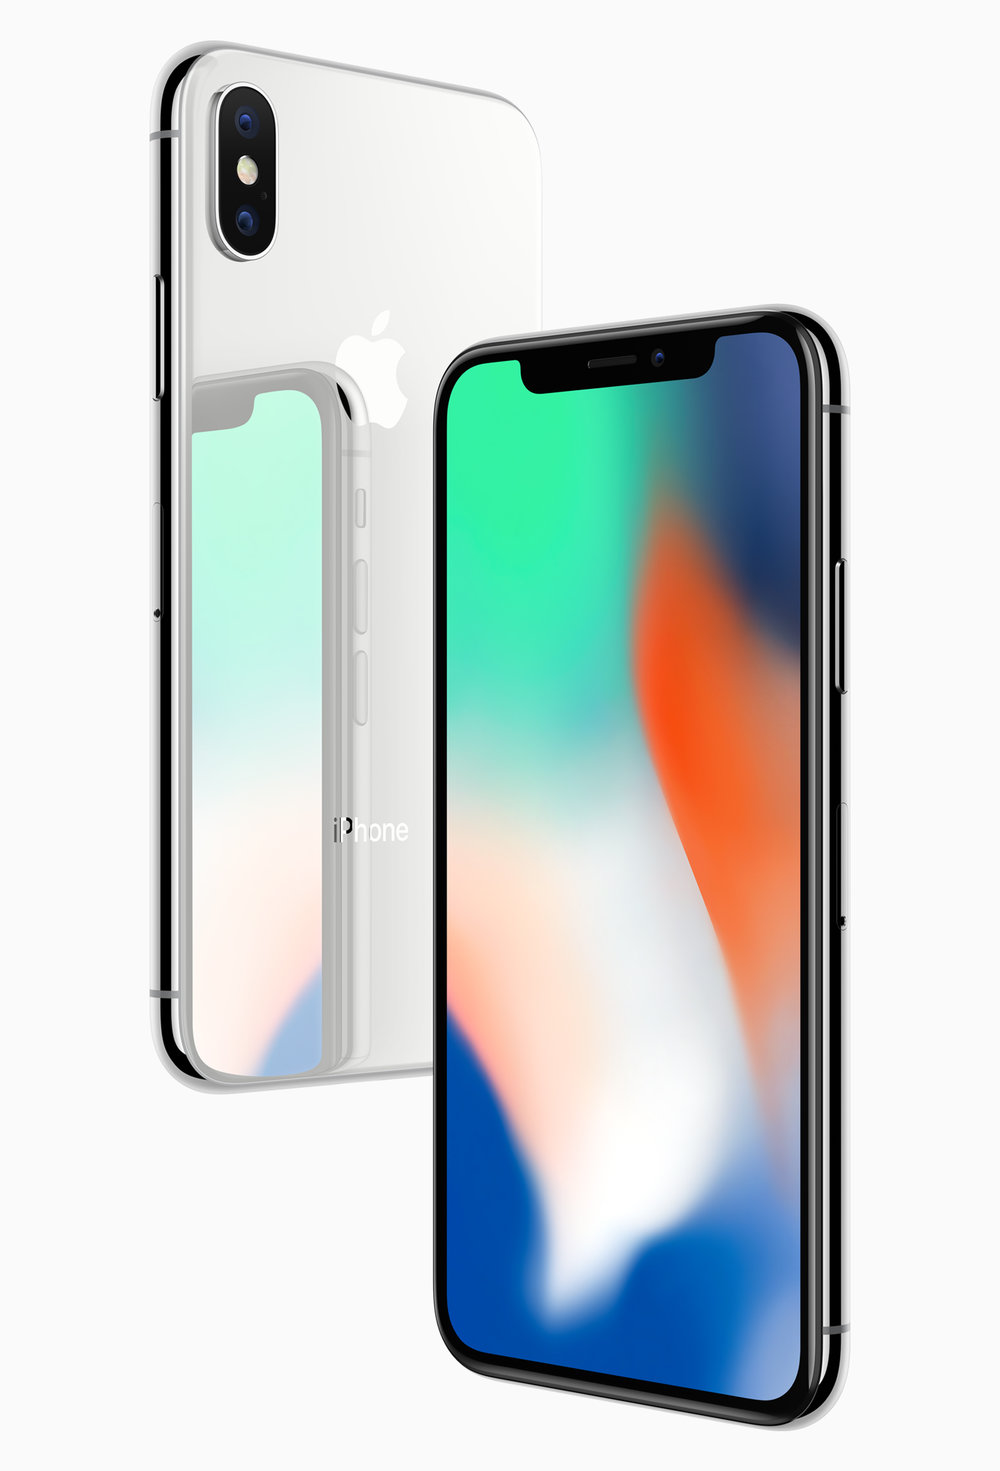 iphonex-front-back-glass.jpg